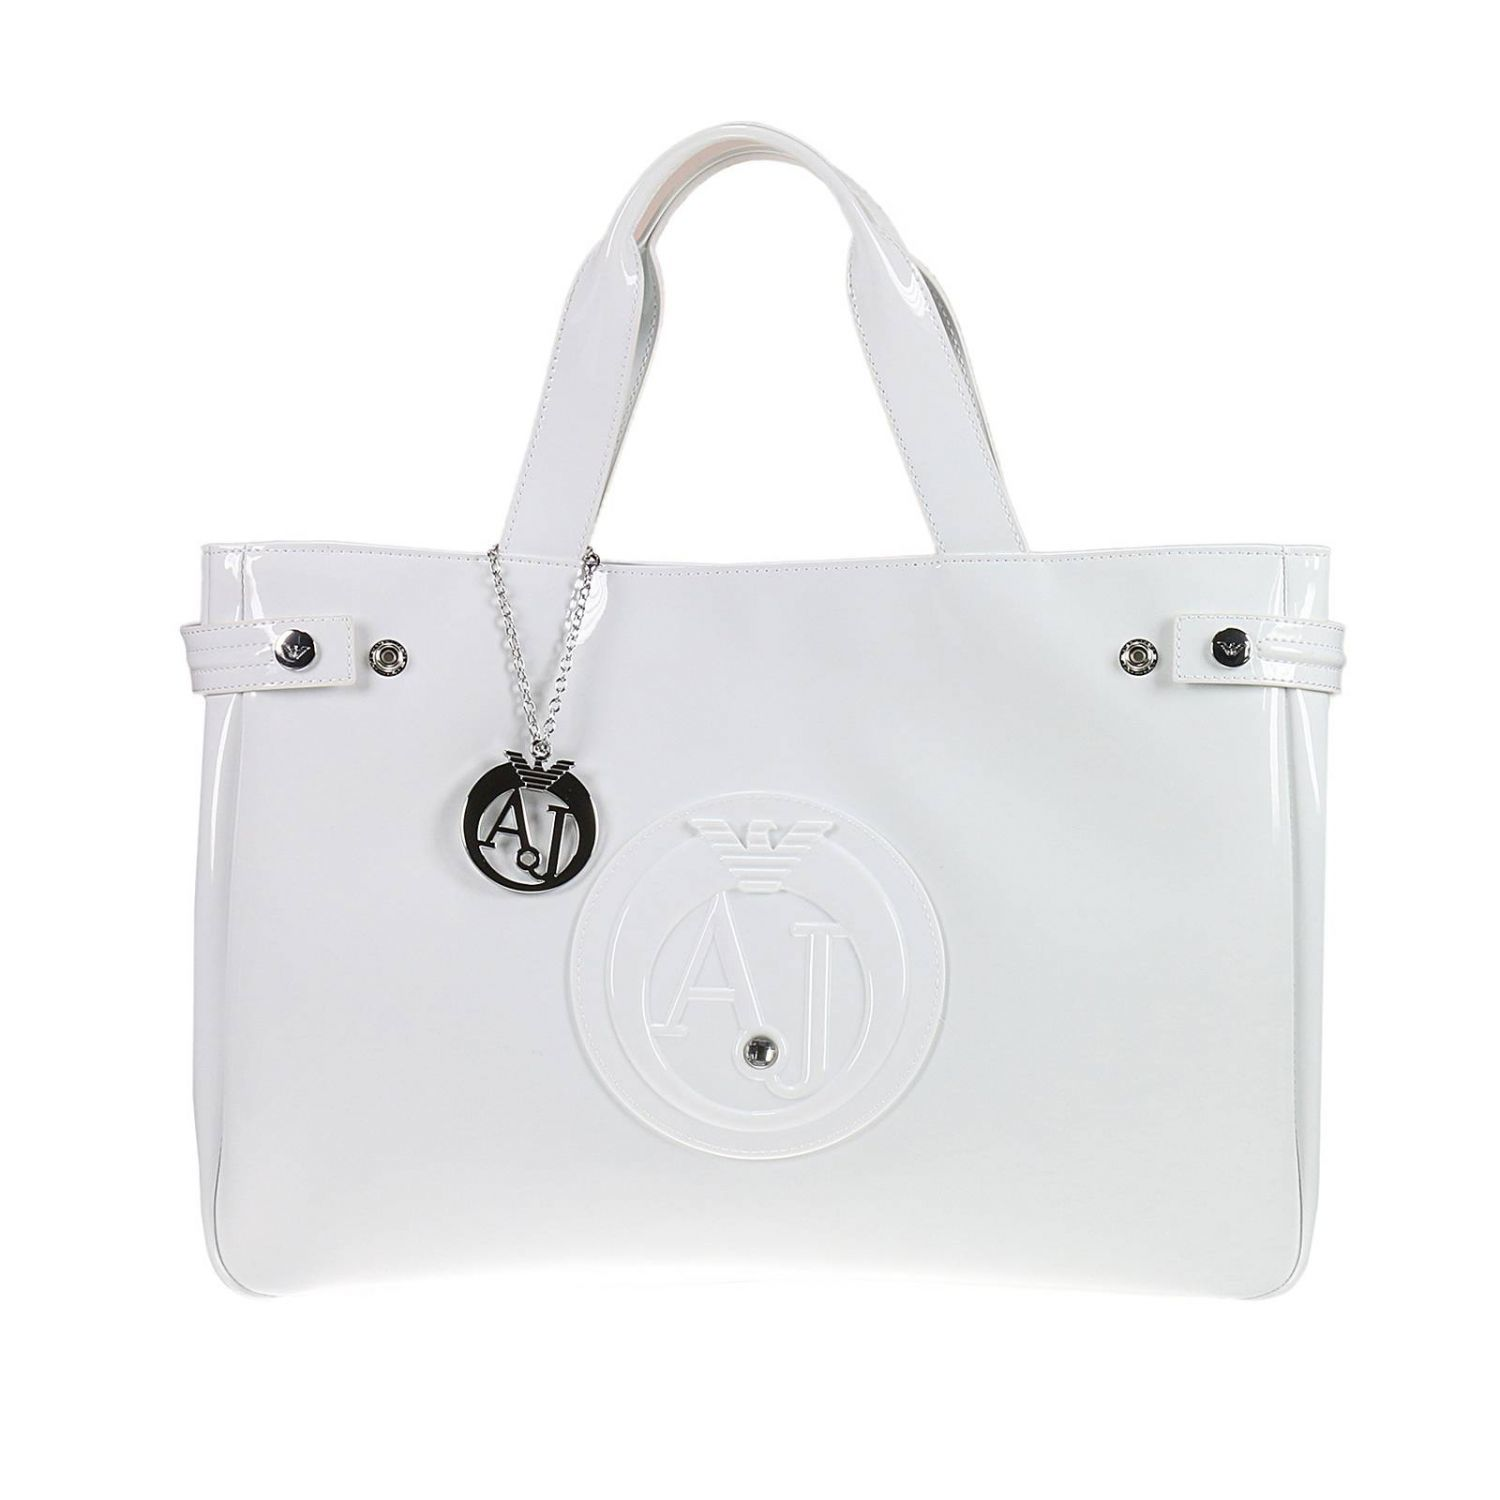 Handbag Patent Leather Classic Shopping Bag With Rhinest